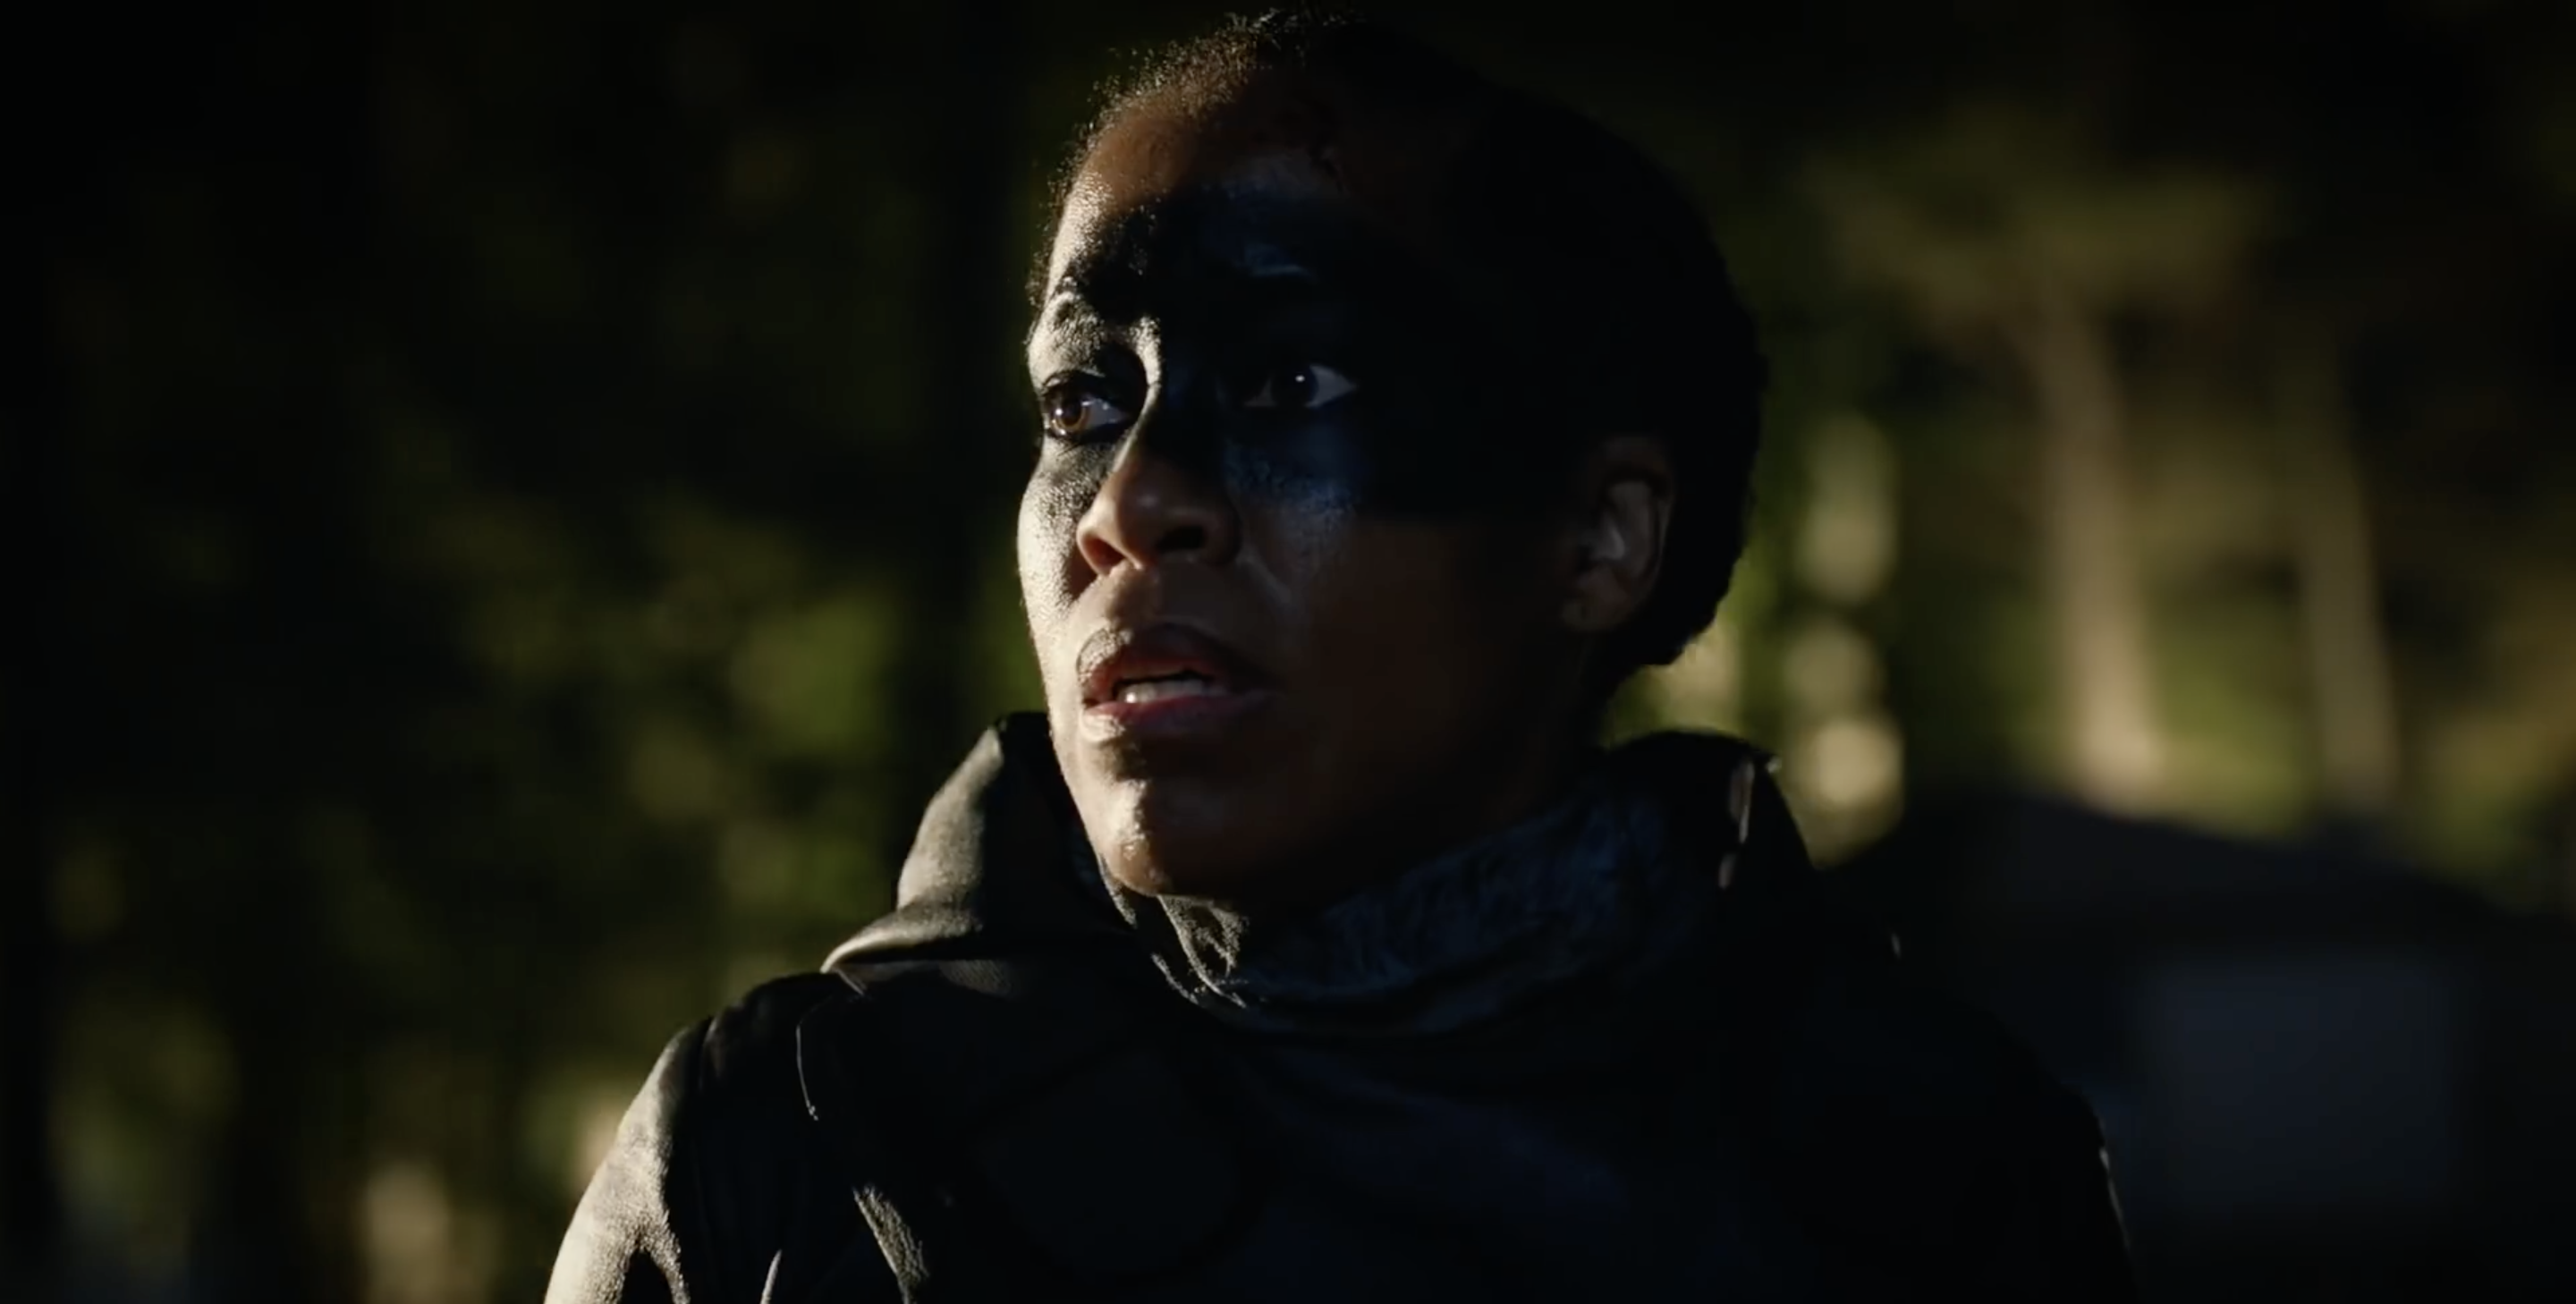 Angela Abraham (Regina King), with dark paint over her eyes, watches chaos unfold.